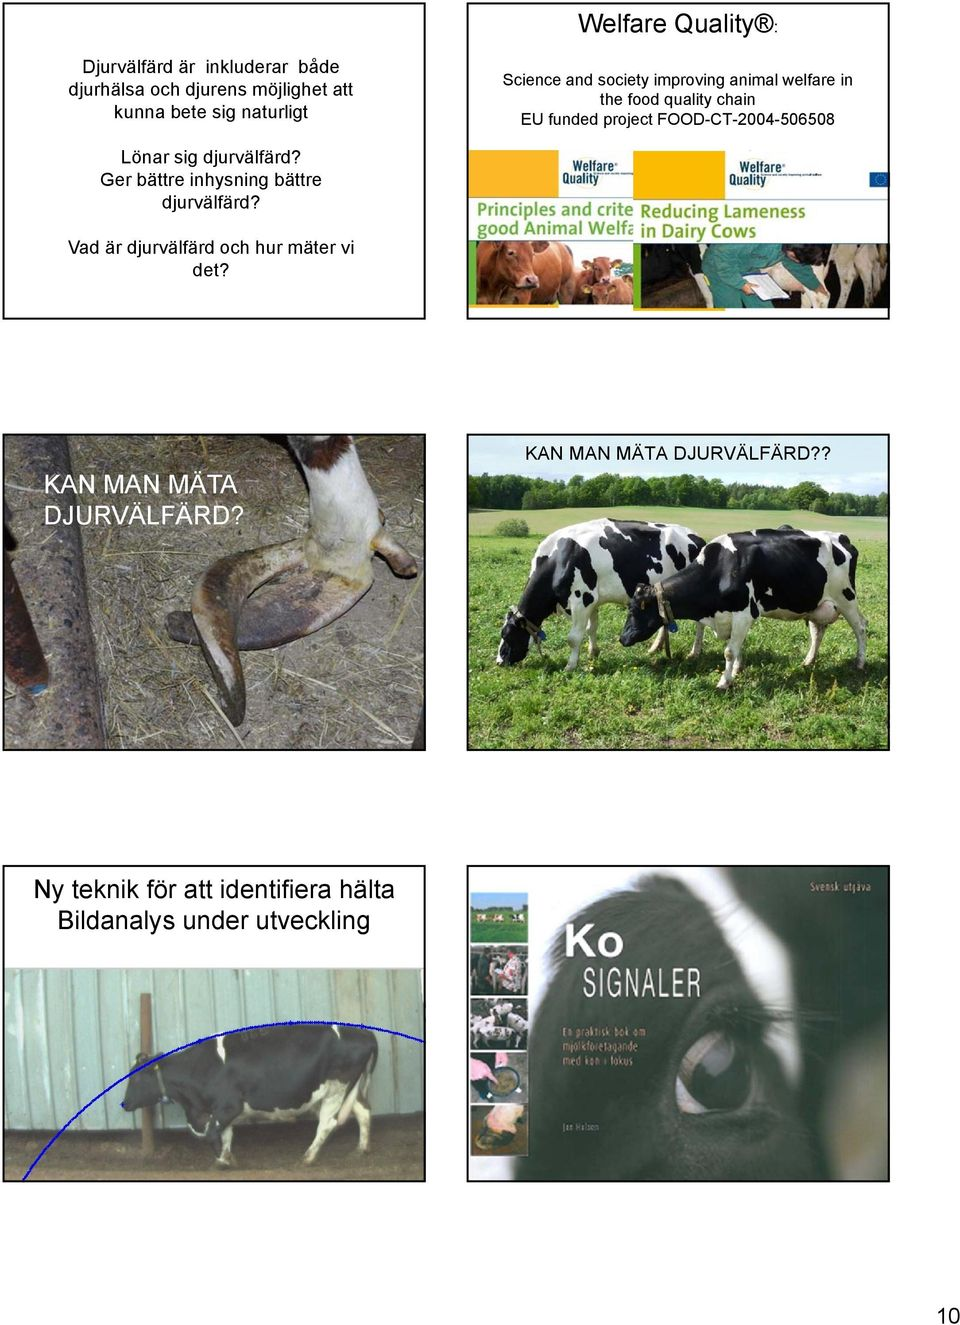 Science and society improving animal welfare in the food quality chain EU funded project FOOD-CT-2004-506508 Forskning för att utveckla